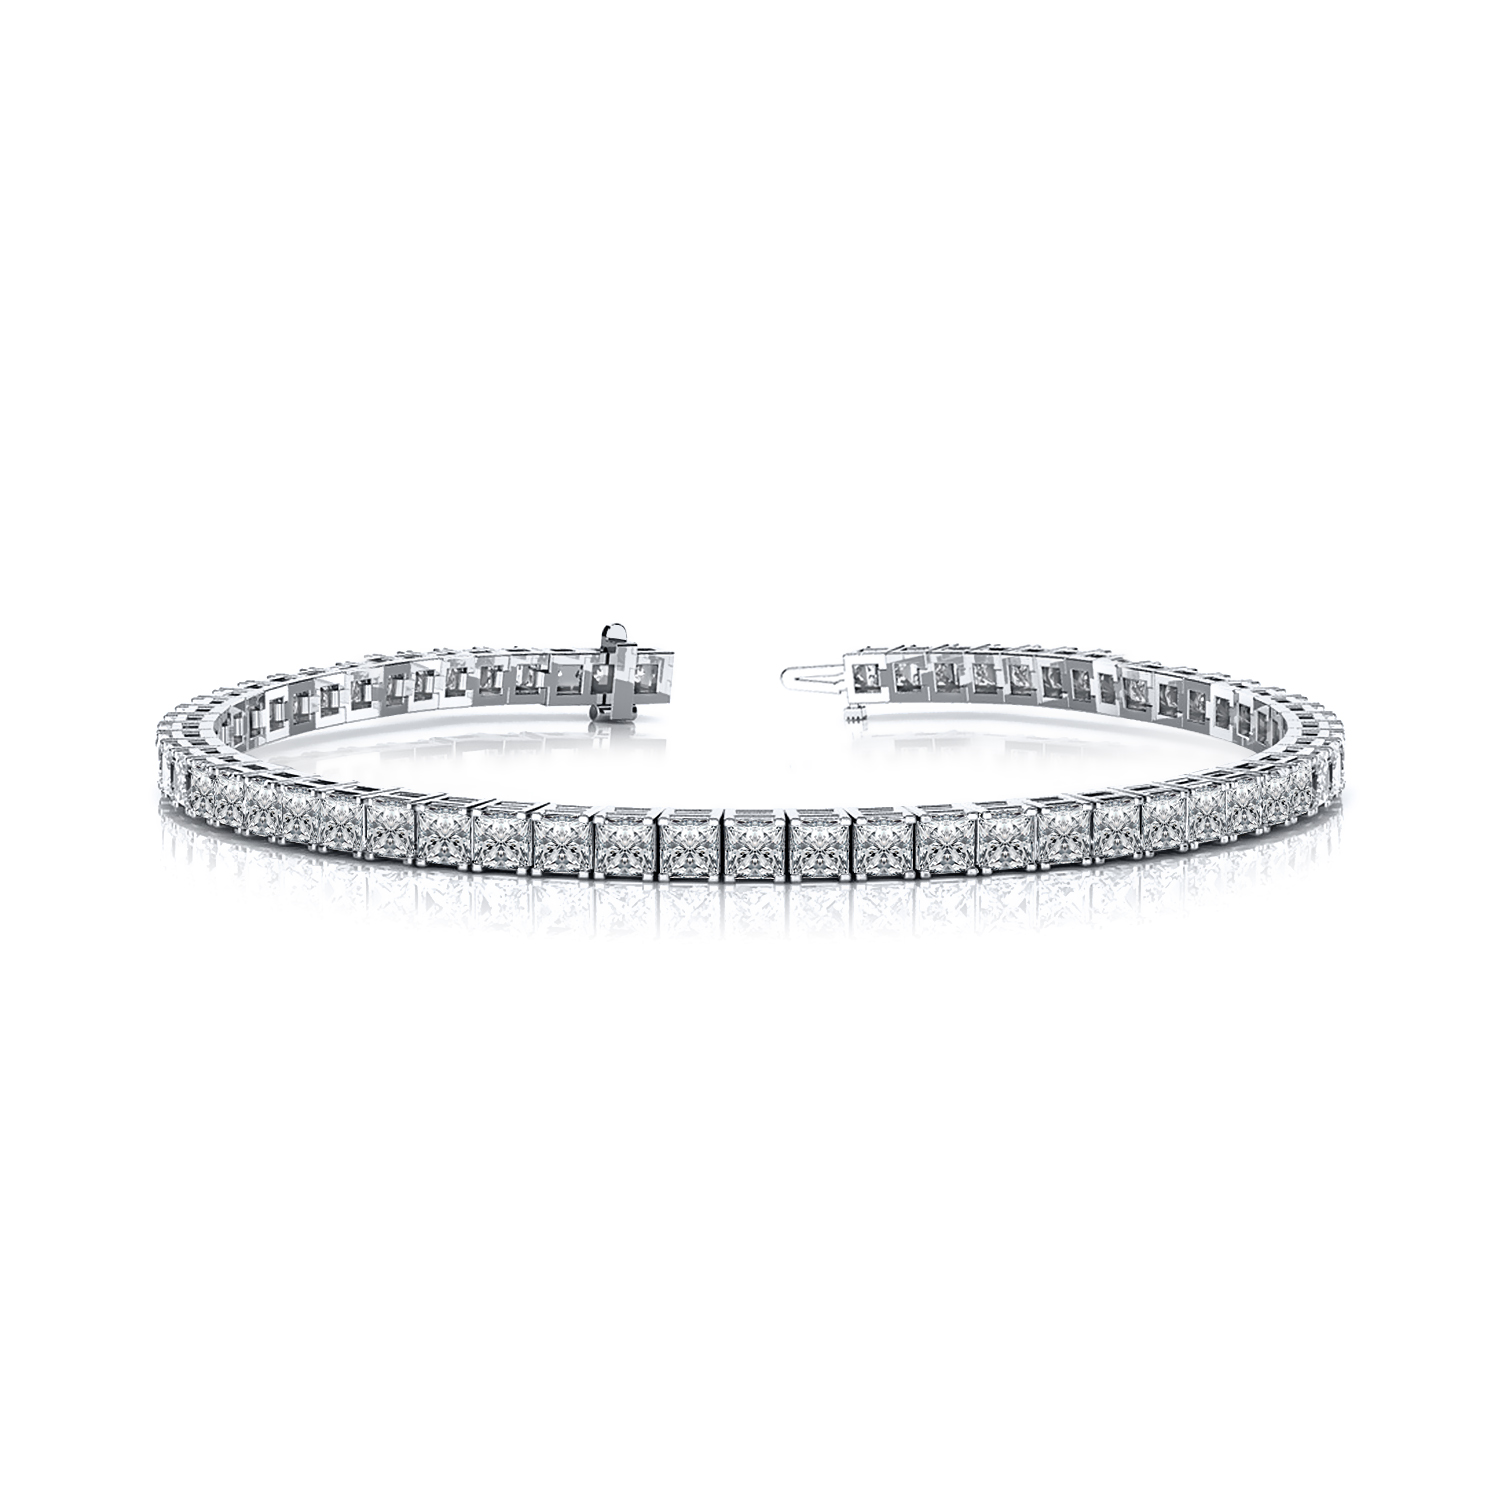 Certified 14k White Gold 4-Prong Princess Diamond Tennis Bracelet 6.00 ct. tw. (I-J, I1)